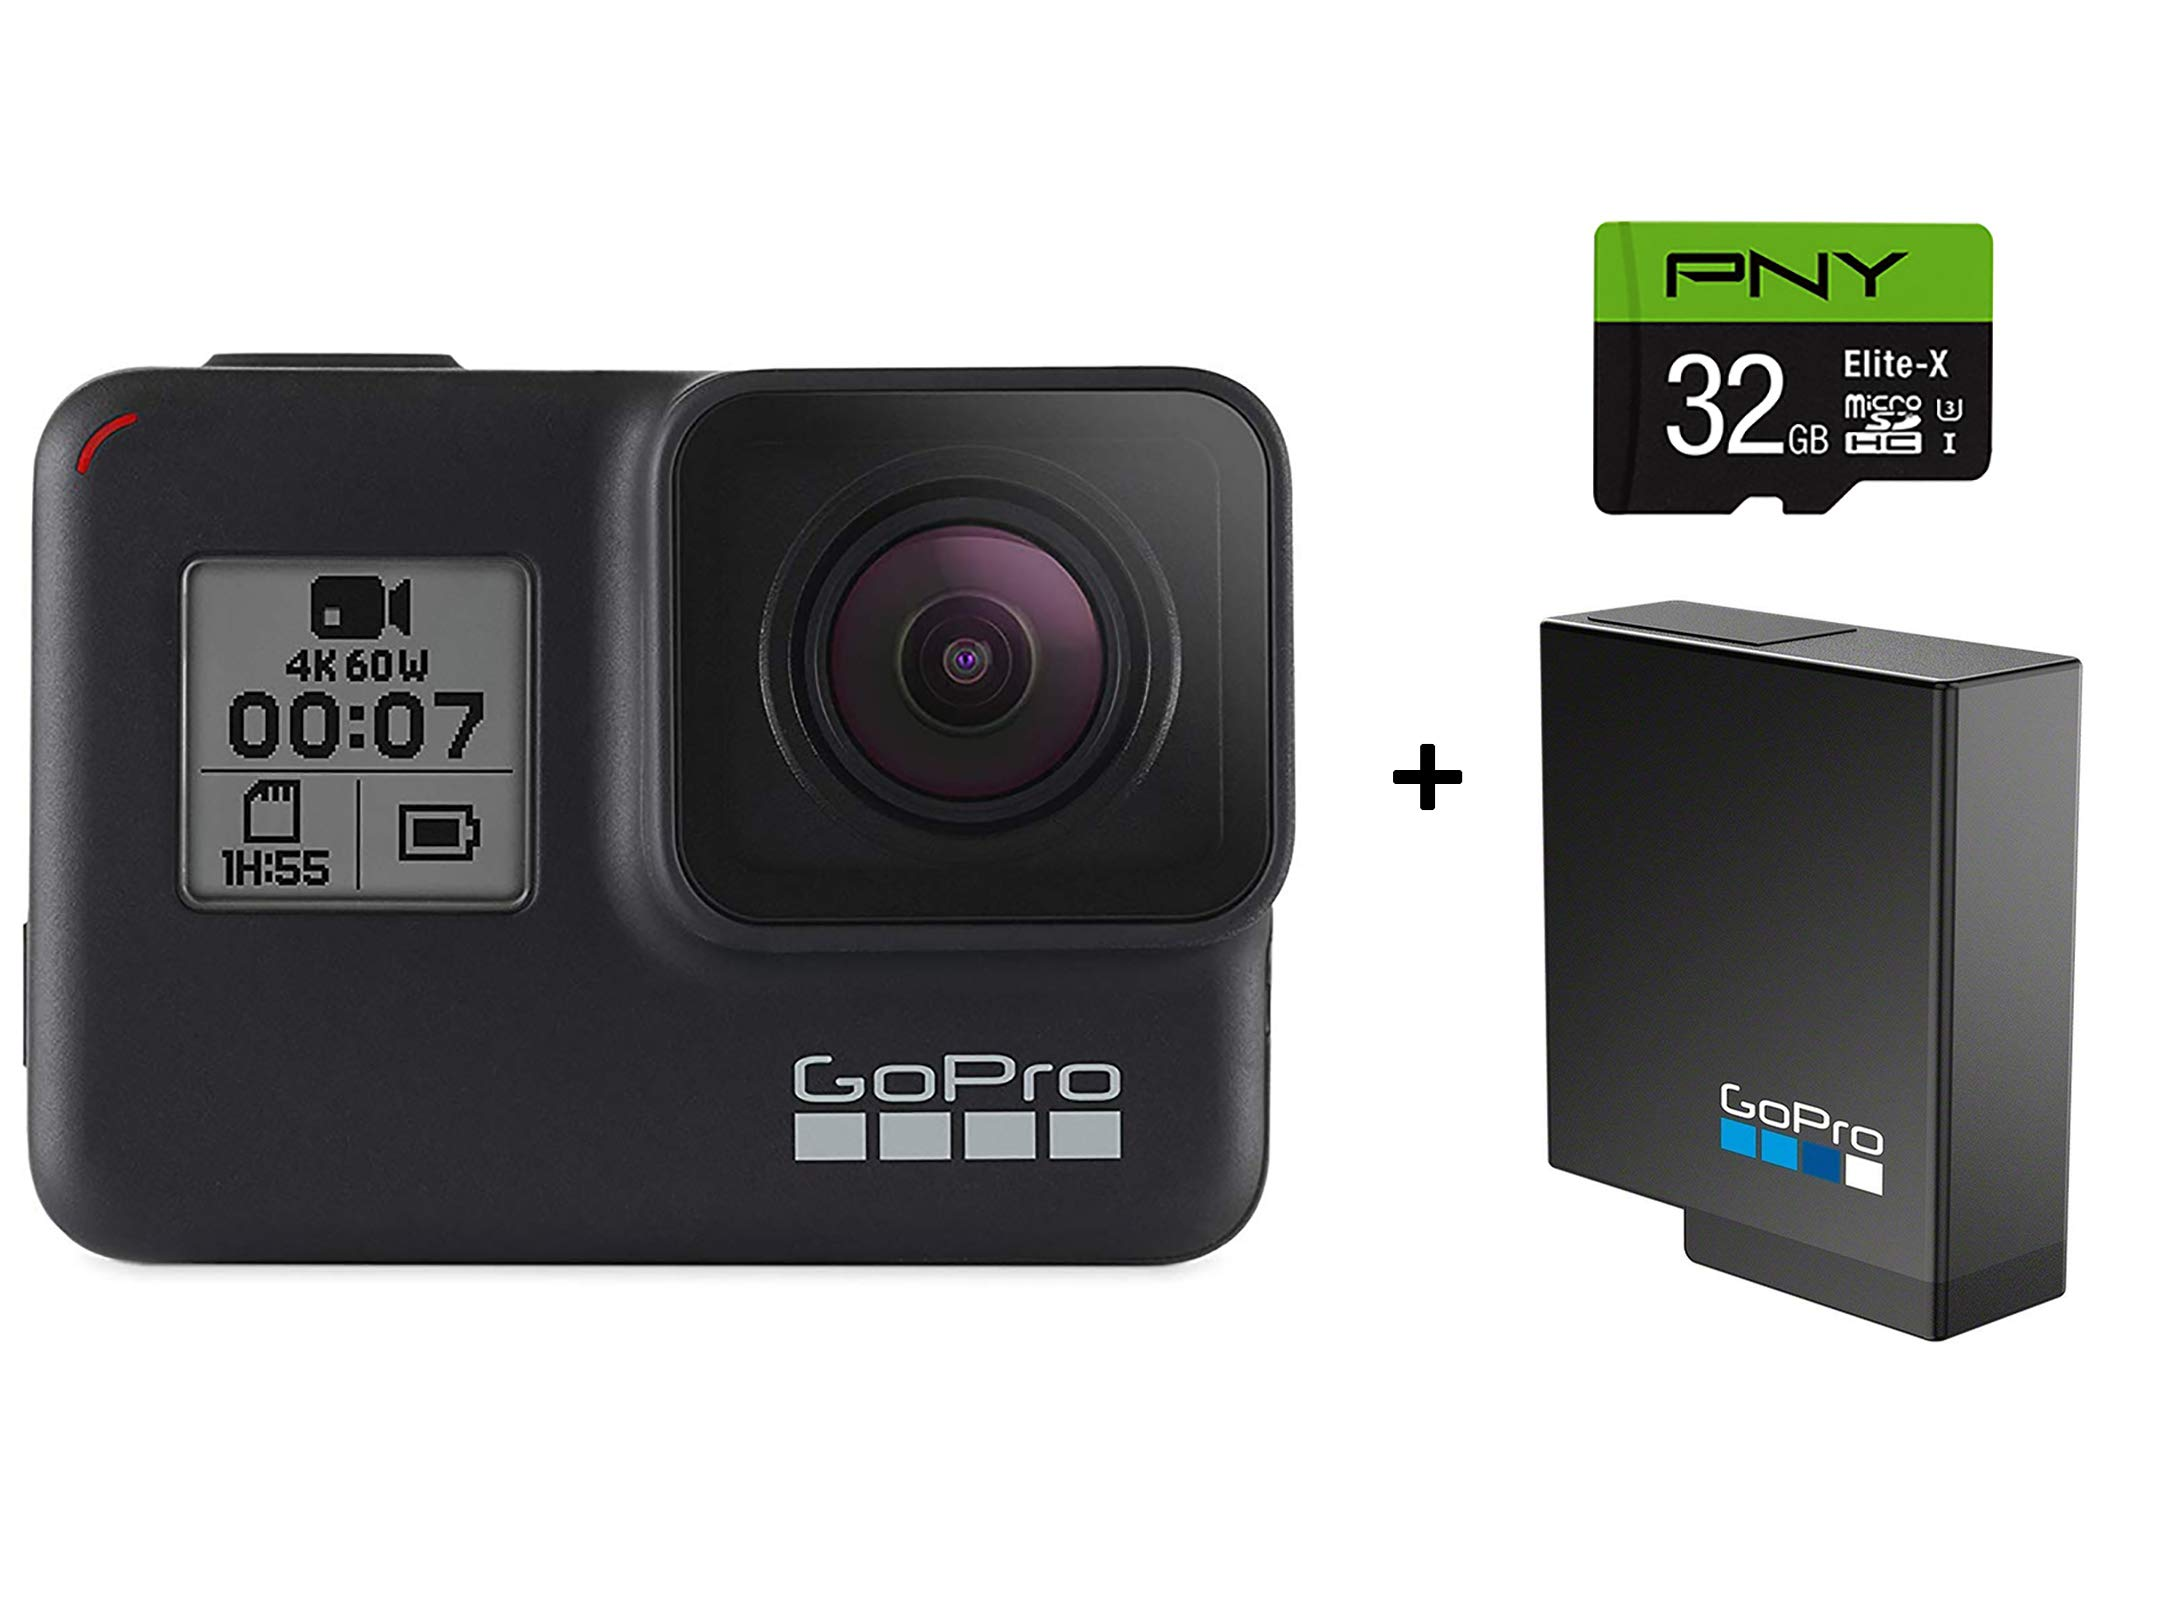 GoPro HERO7 Black Camera + Extra Rechargeable Battery + PNY Elite-X 32GB U3 microSDHC Card (Bundle) - Waterproof Digital Action Camera Touch Screen 4K HD Video 12MP Photos Live Streaming Stabilization by GoPro